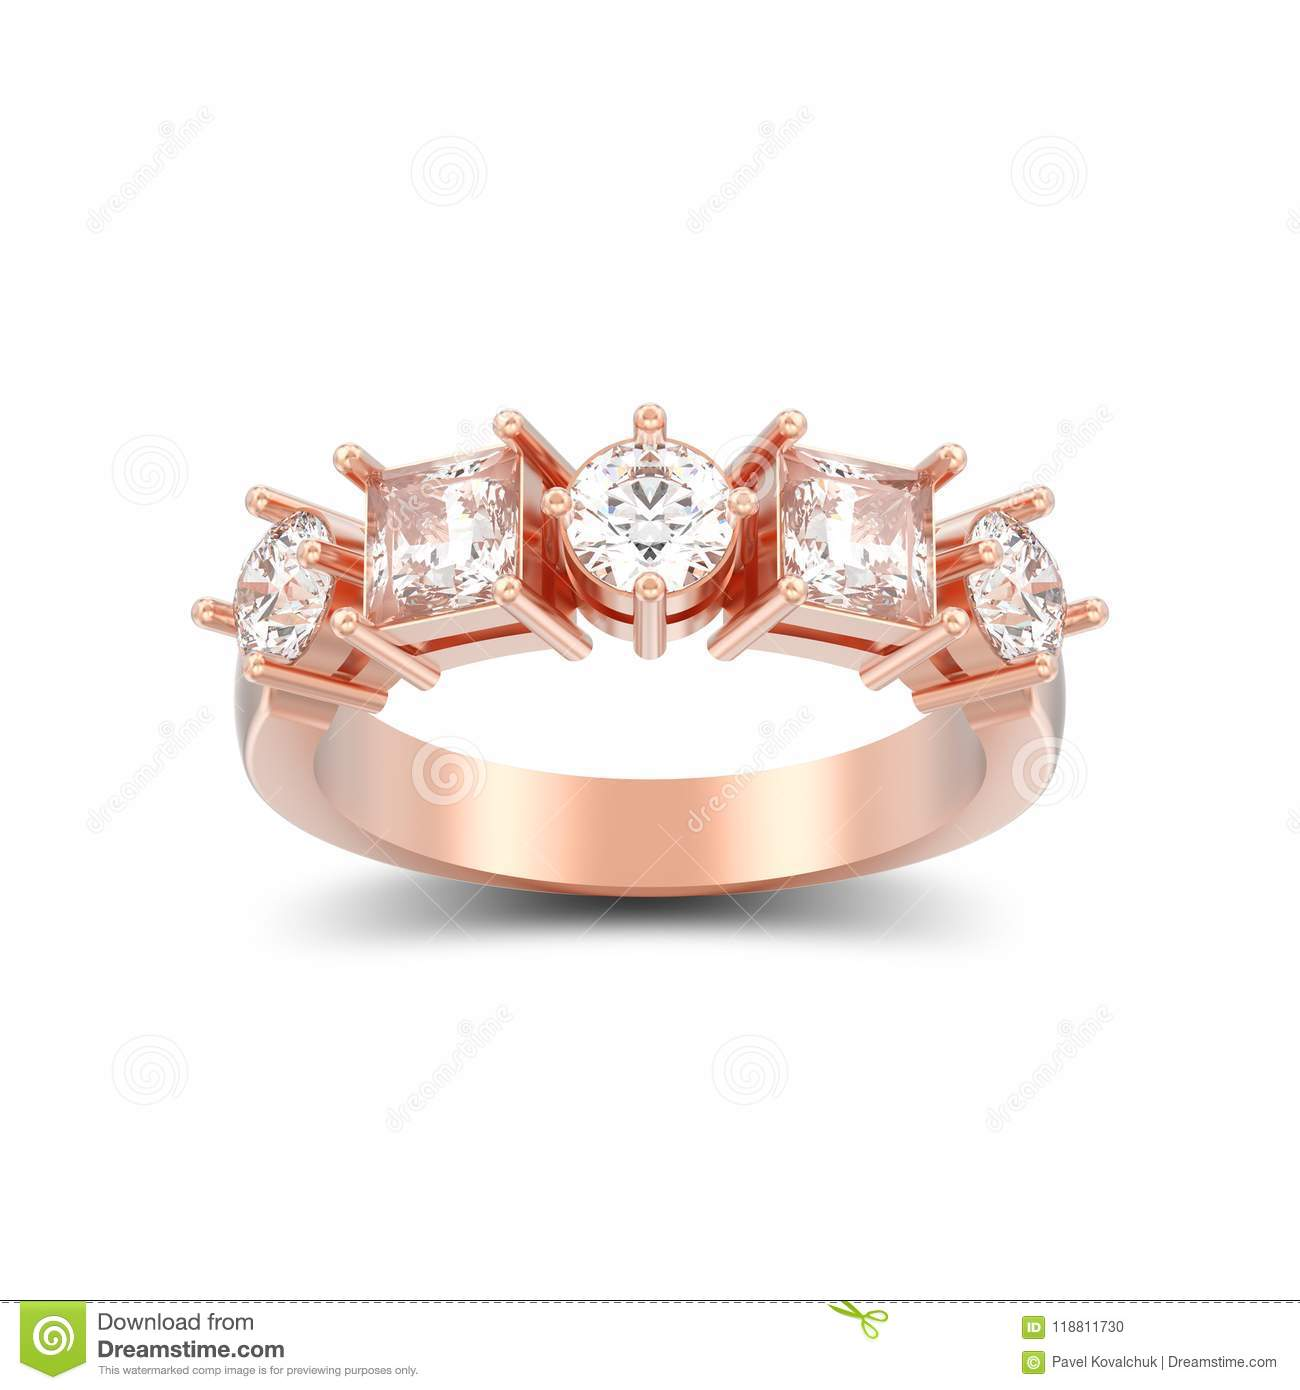 087c10c75d 3D Illustration Isolated Rose Gold Decorative Ring With Differen ...